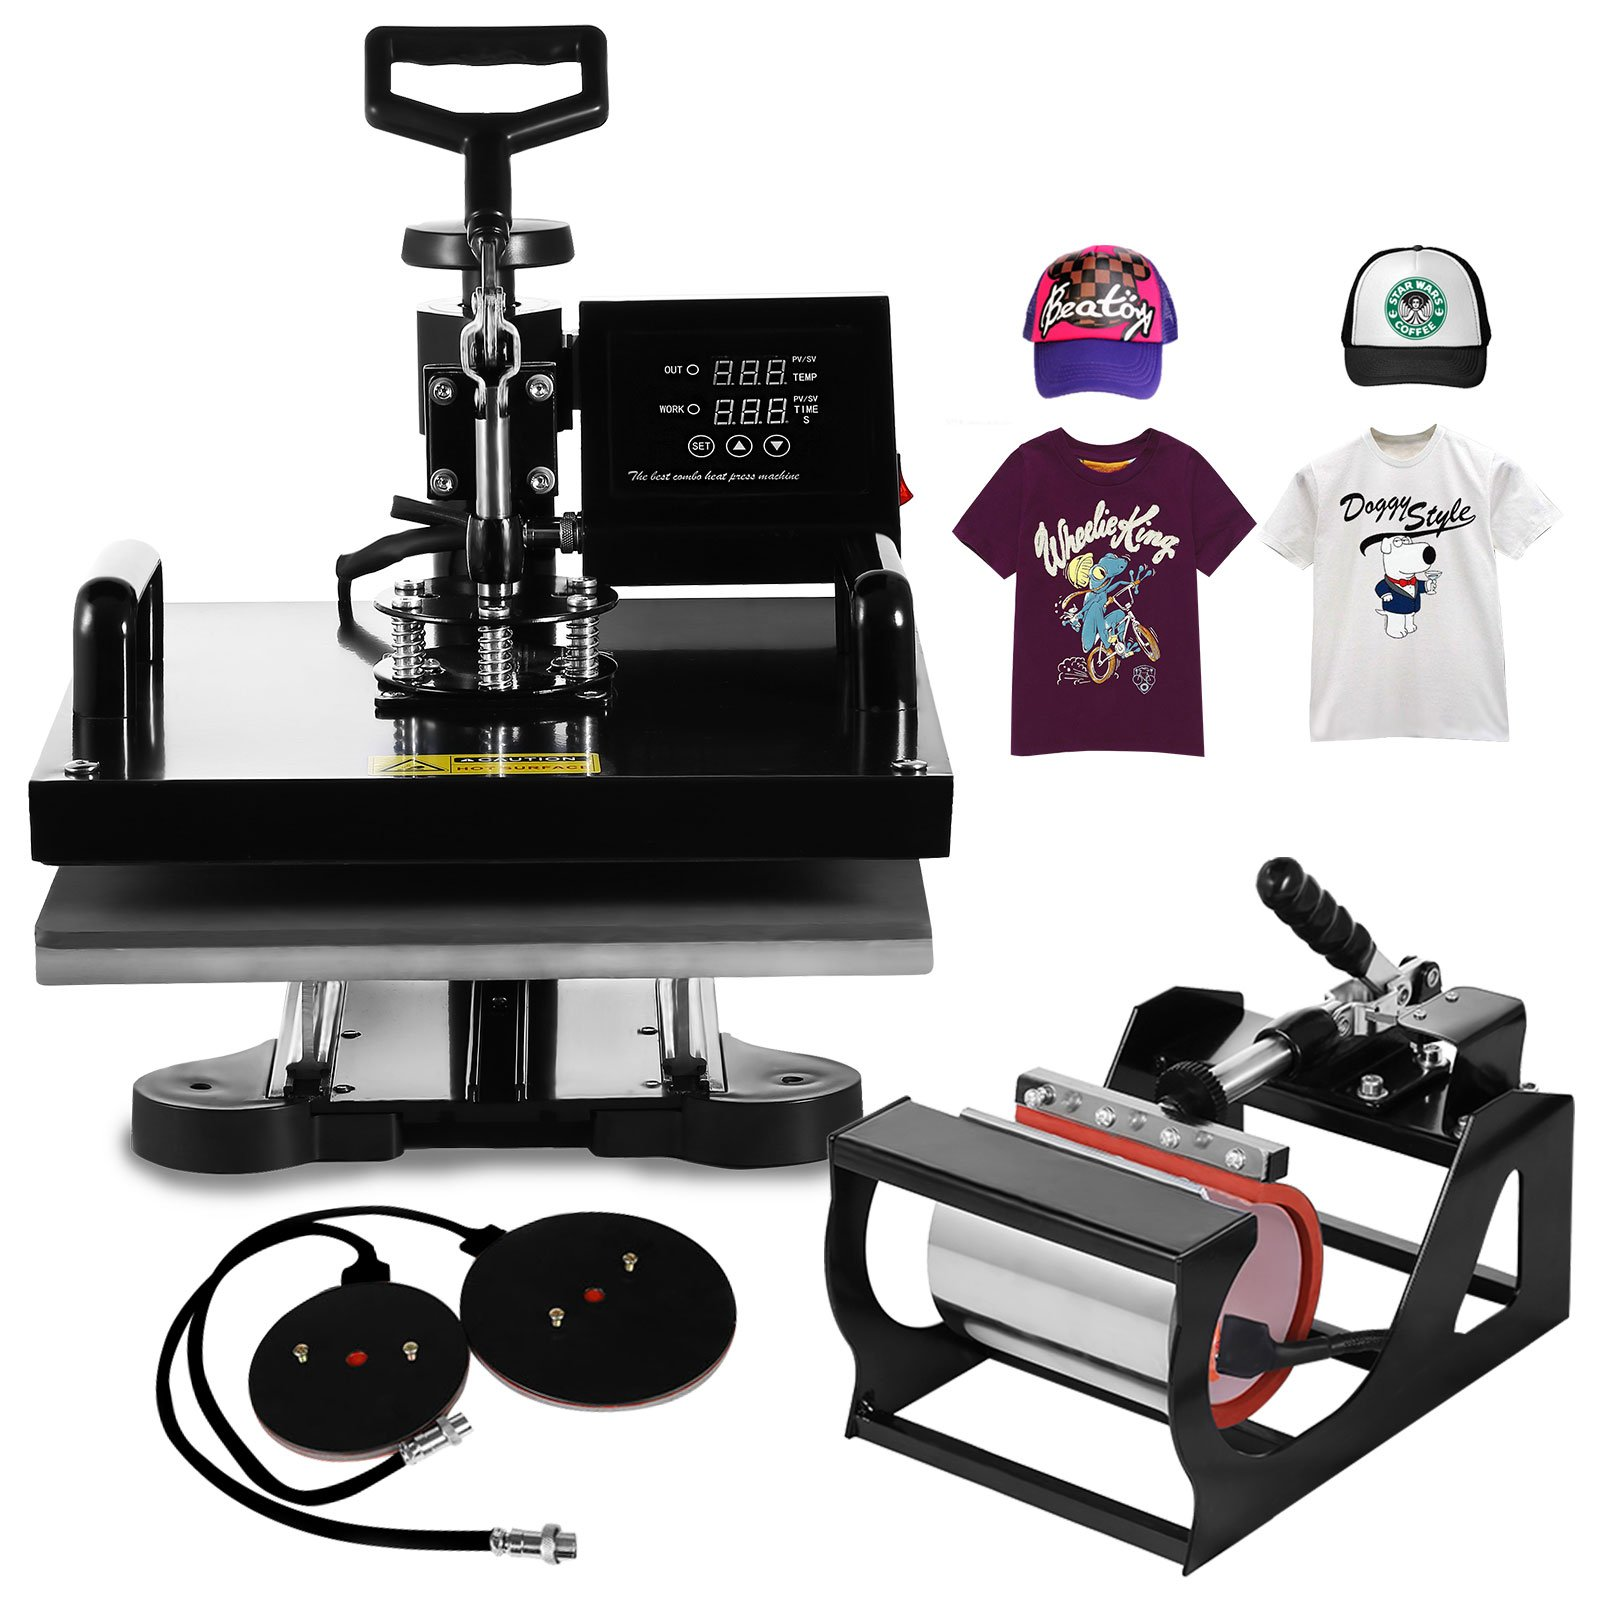 ShareProfit Heat Press 15x15 Inch Heat Press Machine 1200W Multifunction Sublimation Digital Heat Transfer Press Machine Swing Away T-Shirt Hat Mug (15X15Inch 5 IN 1)